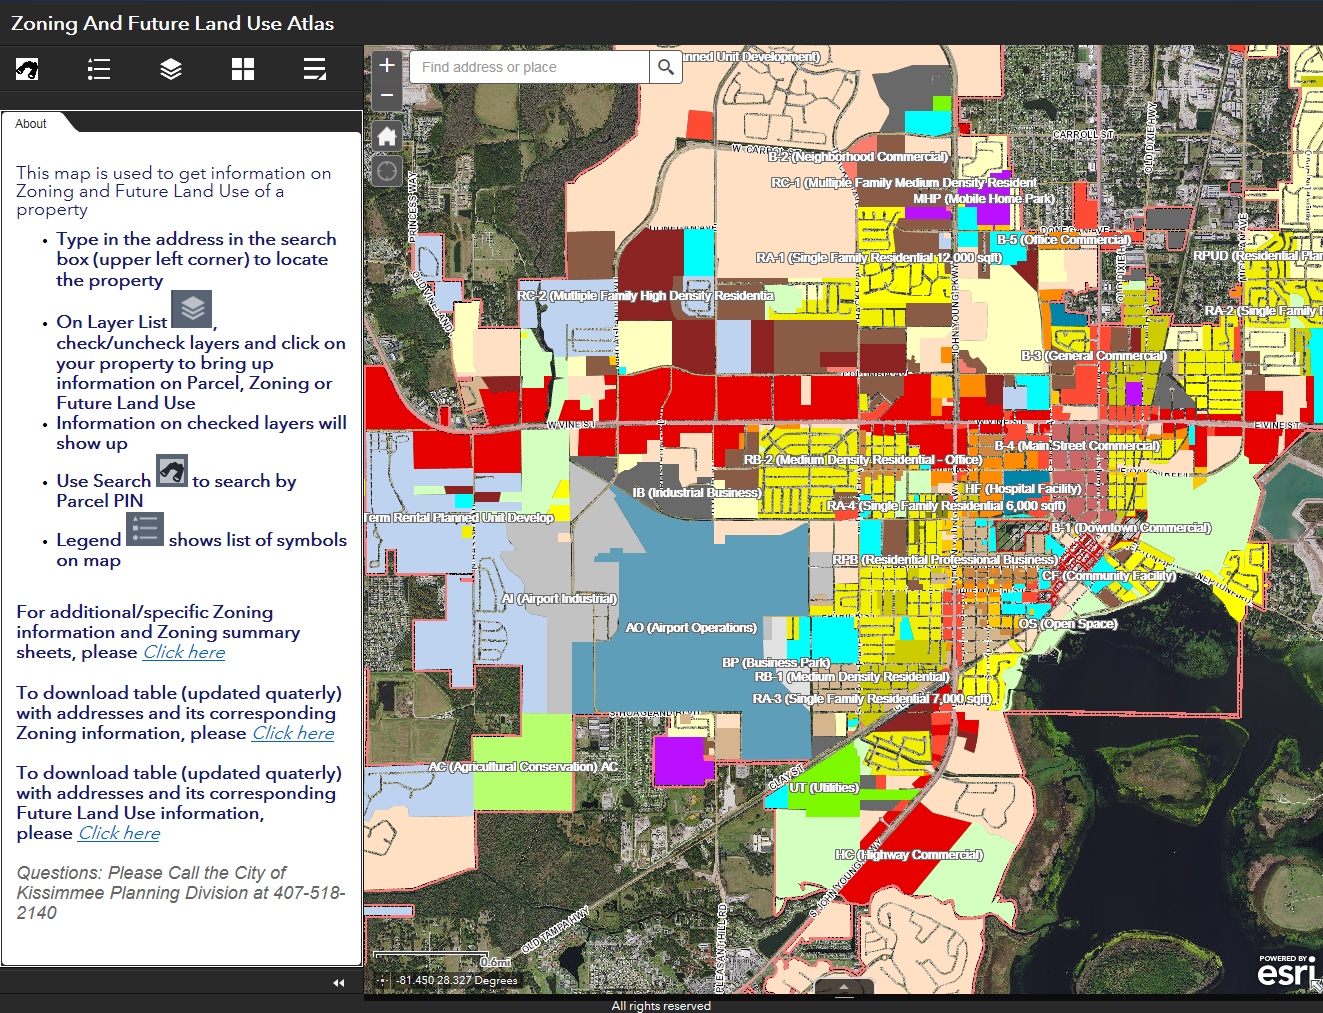 Screen shot of the interactive zoning map